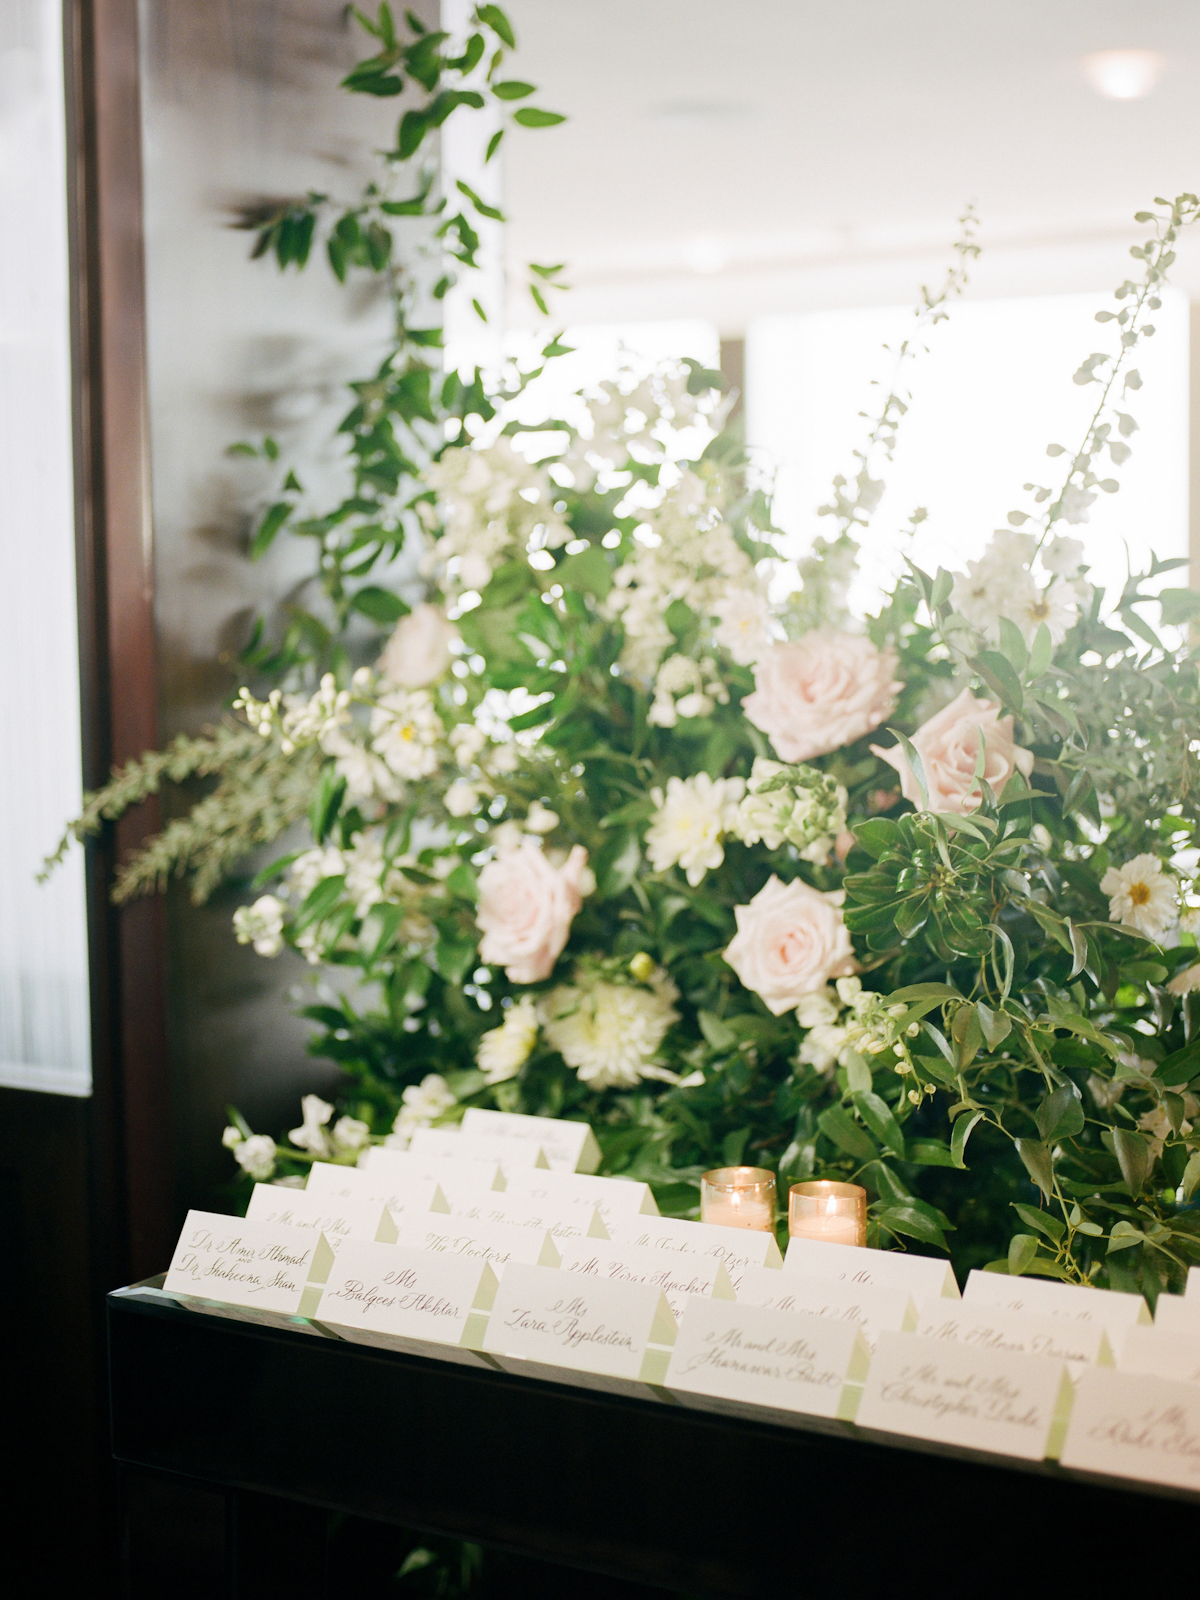 Escort card table flowers and calligraphed cards at Rainbow Room wedding